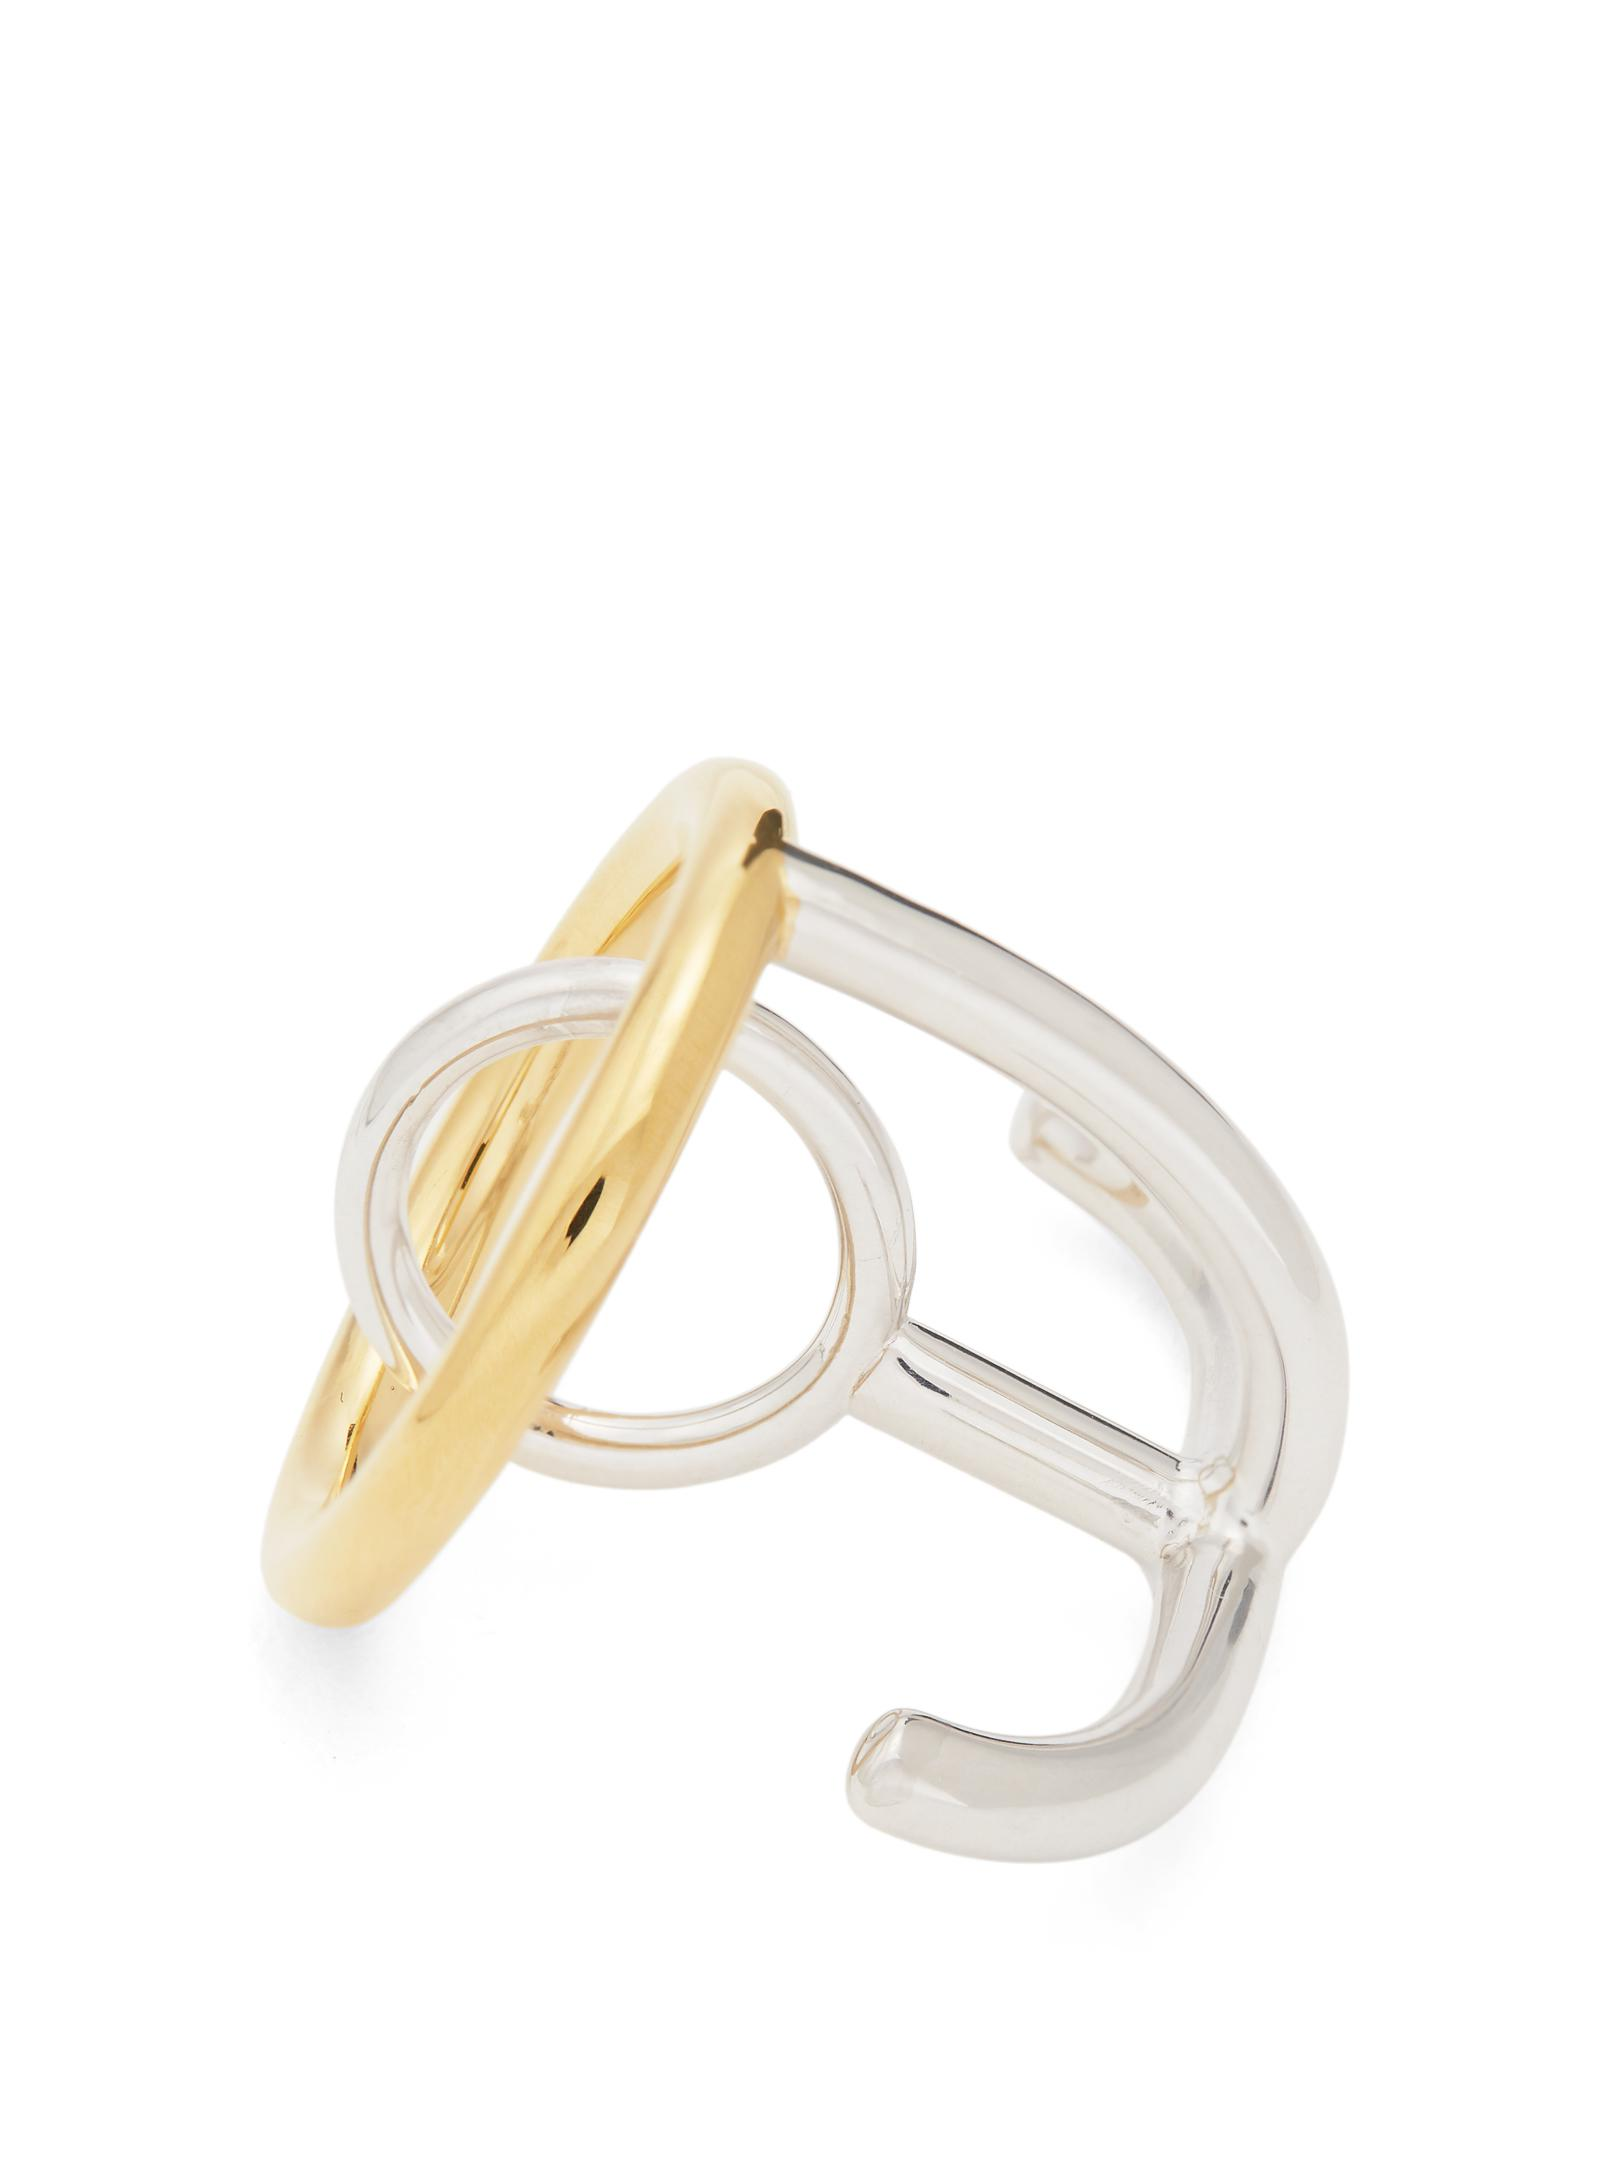 Charlotte Chesnais Saturn silver and gold-plated ring 1d8dC0